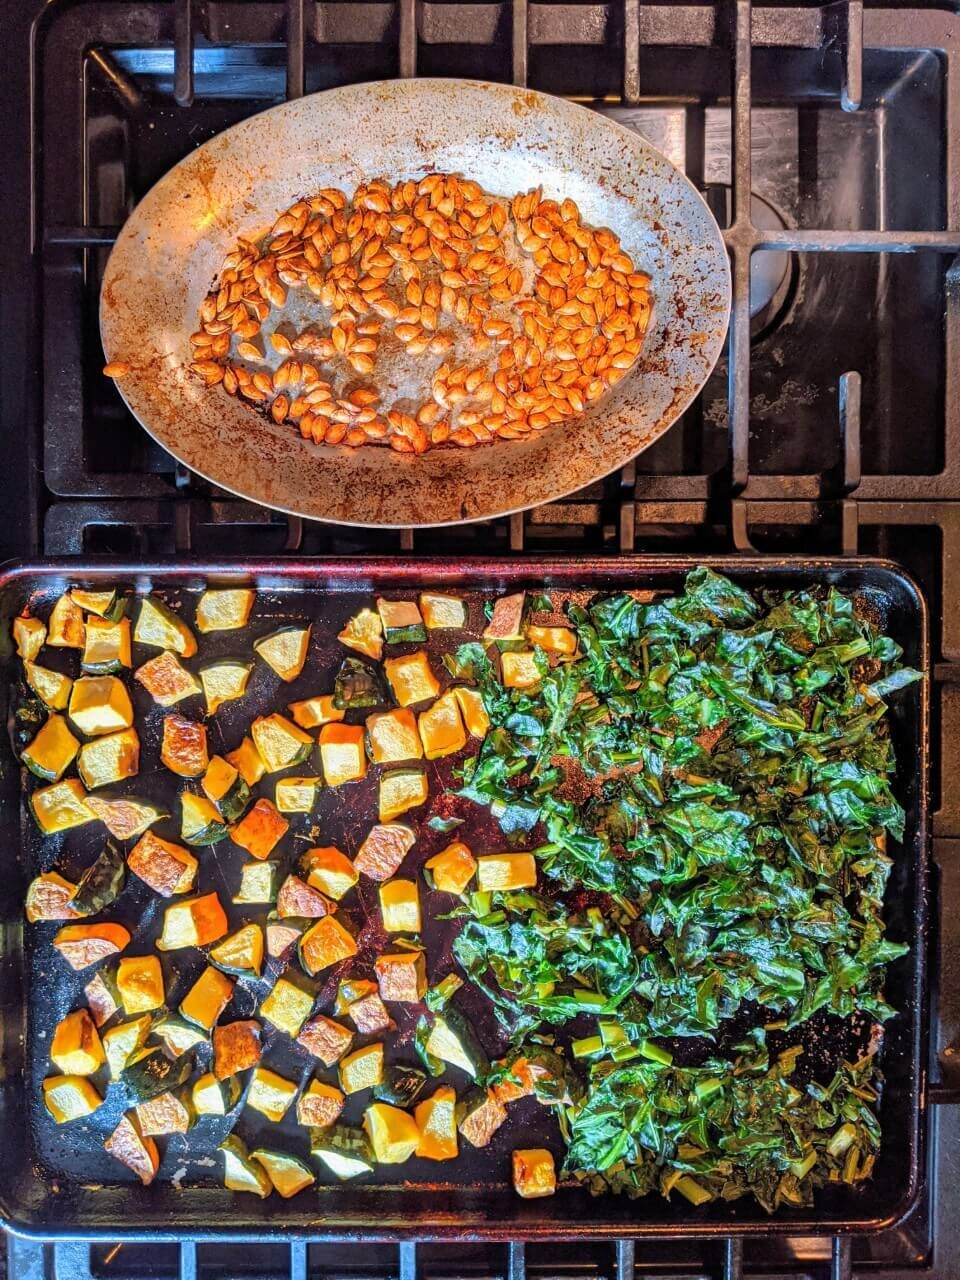 Roasted acorn squash, collards, and acorn squash seeds for adding to the    Winter Grain Bowl with Squash and Wild Rice   .